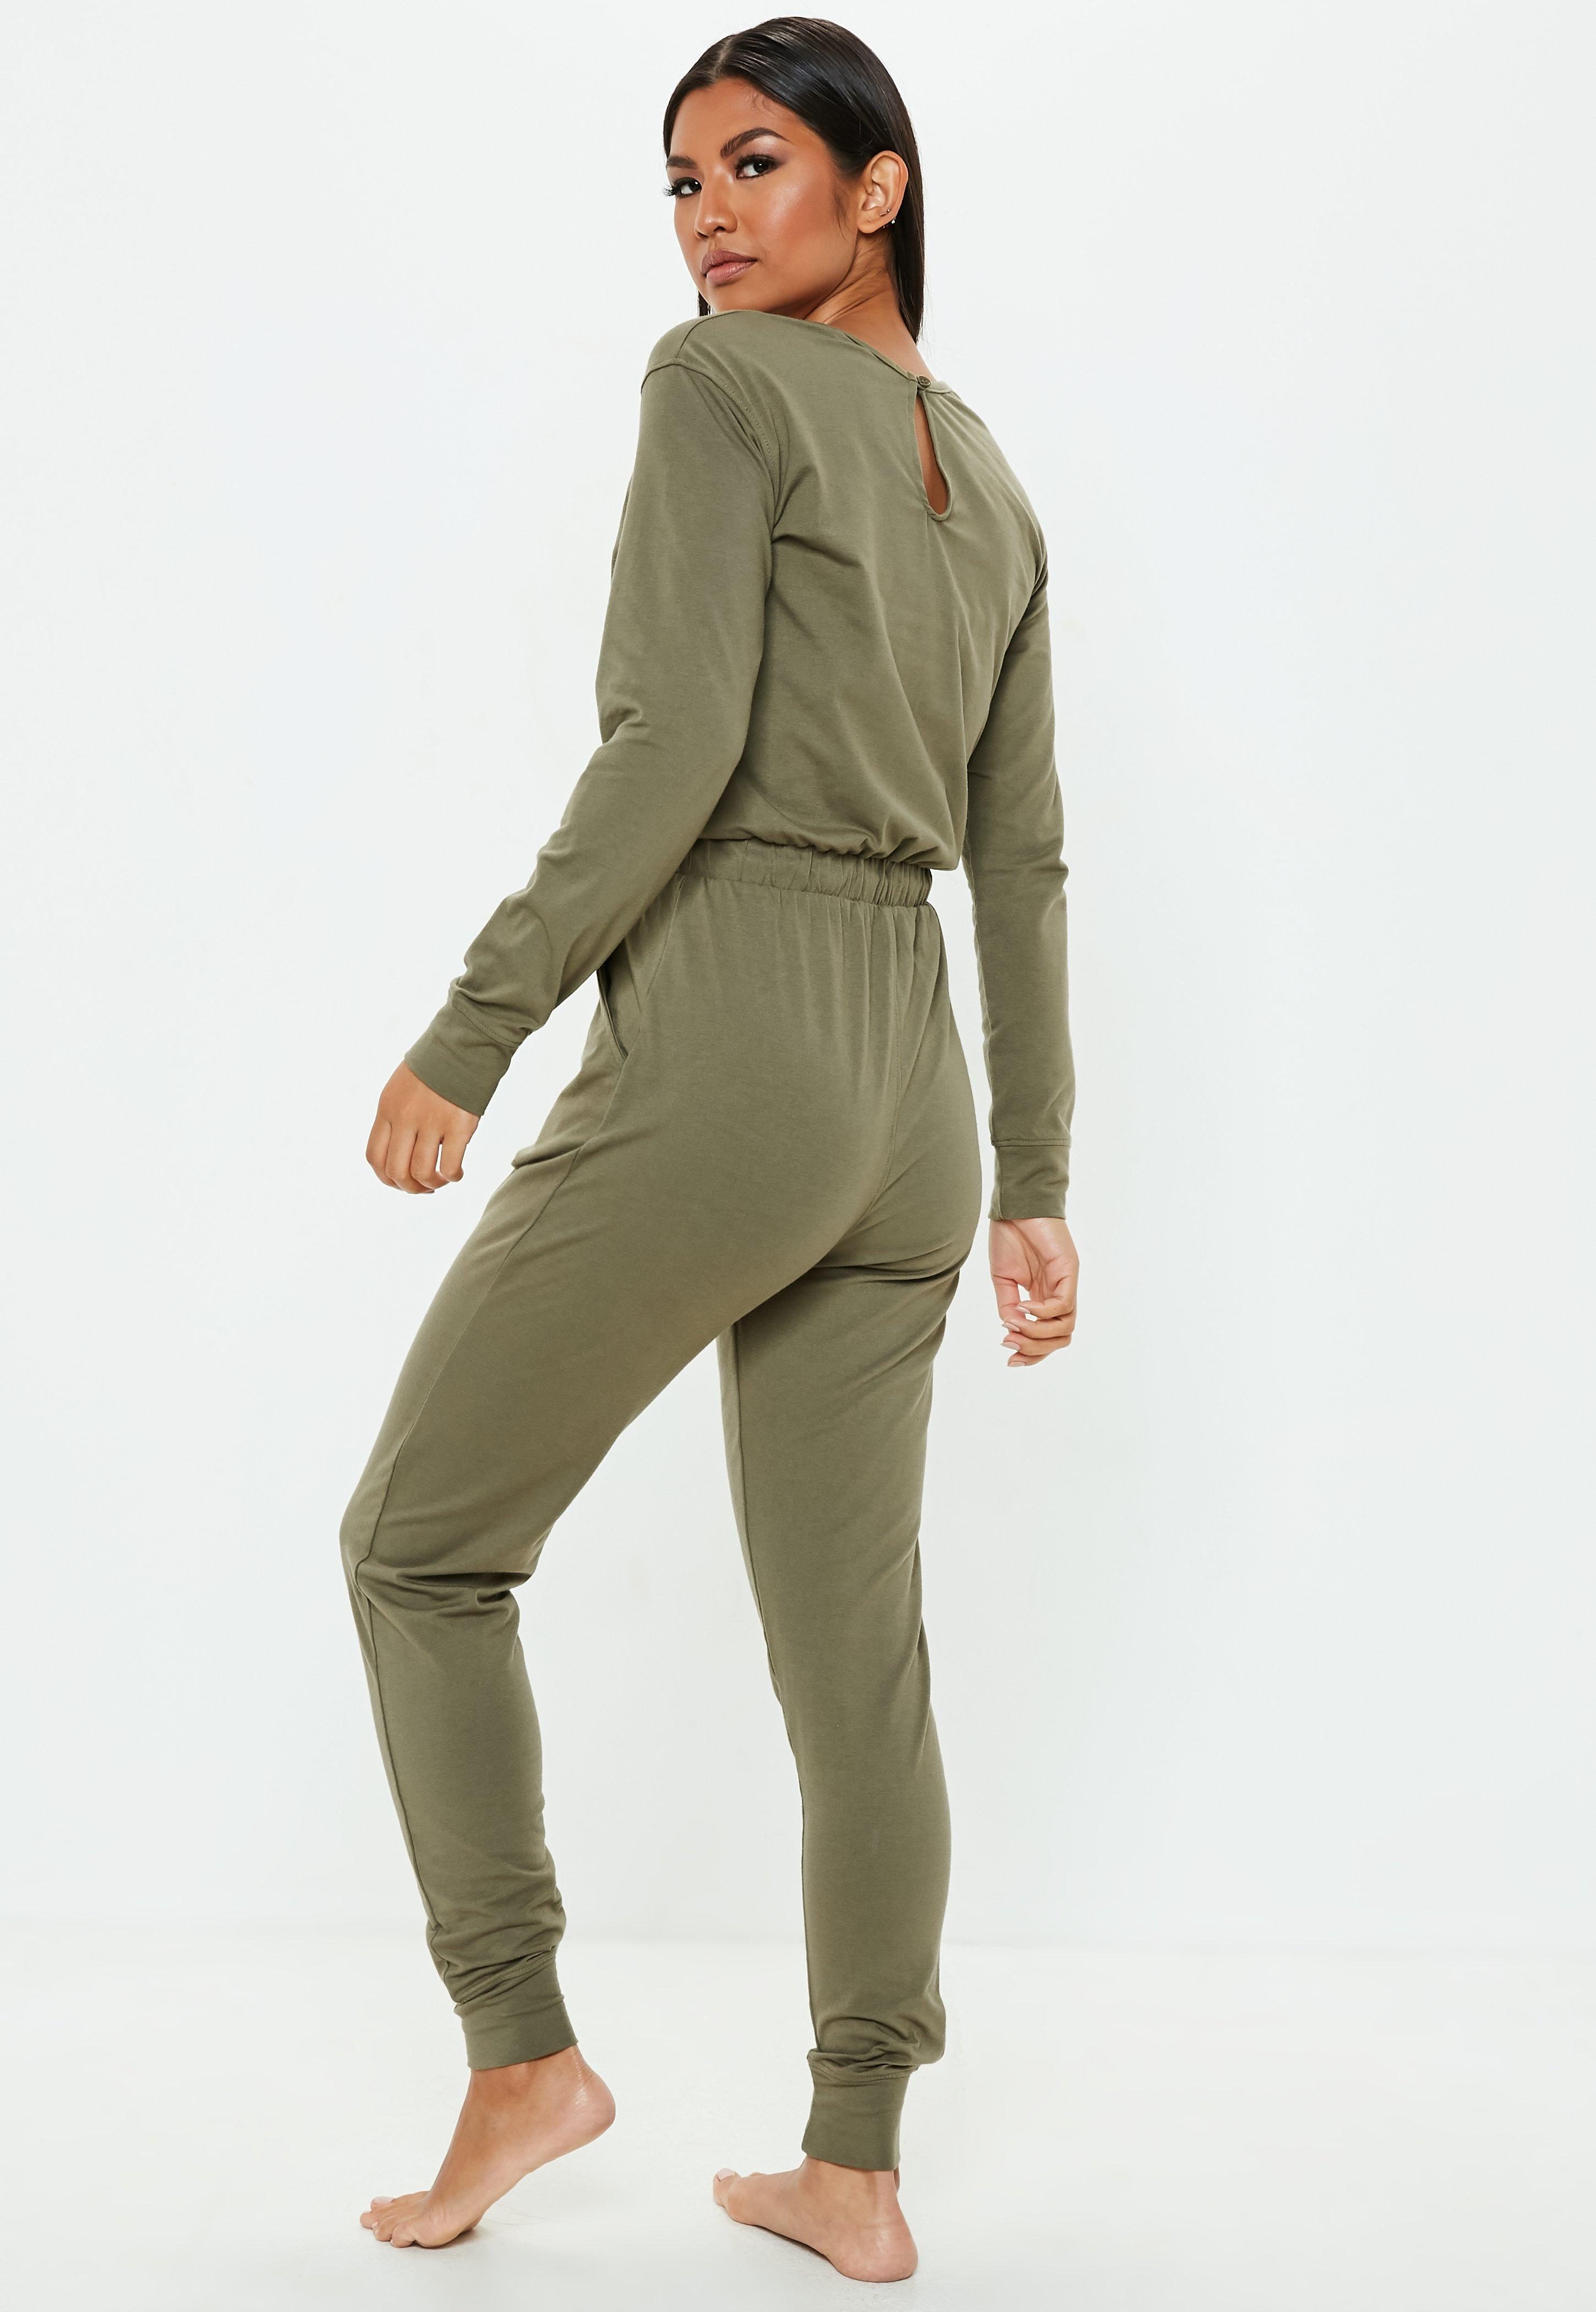 d384f5069b3 Missguided - Green Khaki Casual Loungewear Jumpsuit - Lyst. View fullscreen